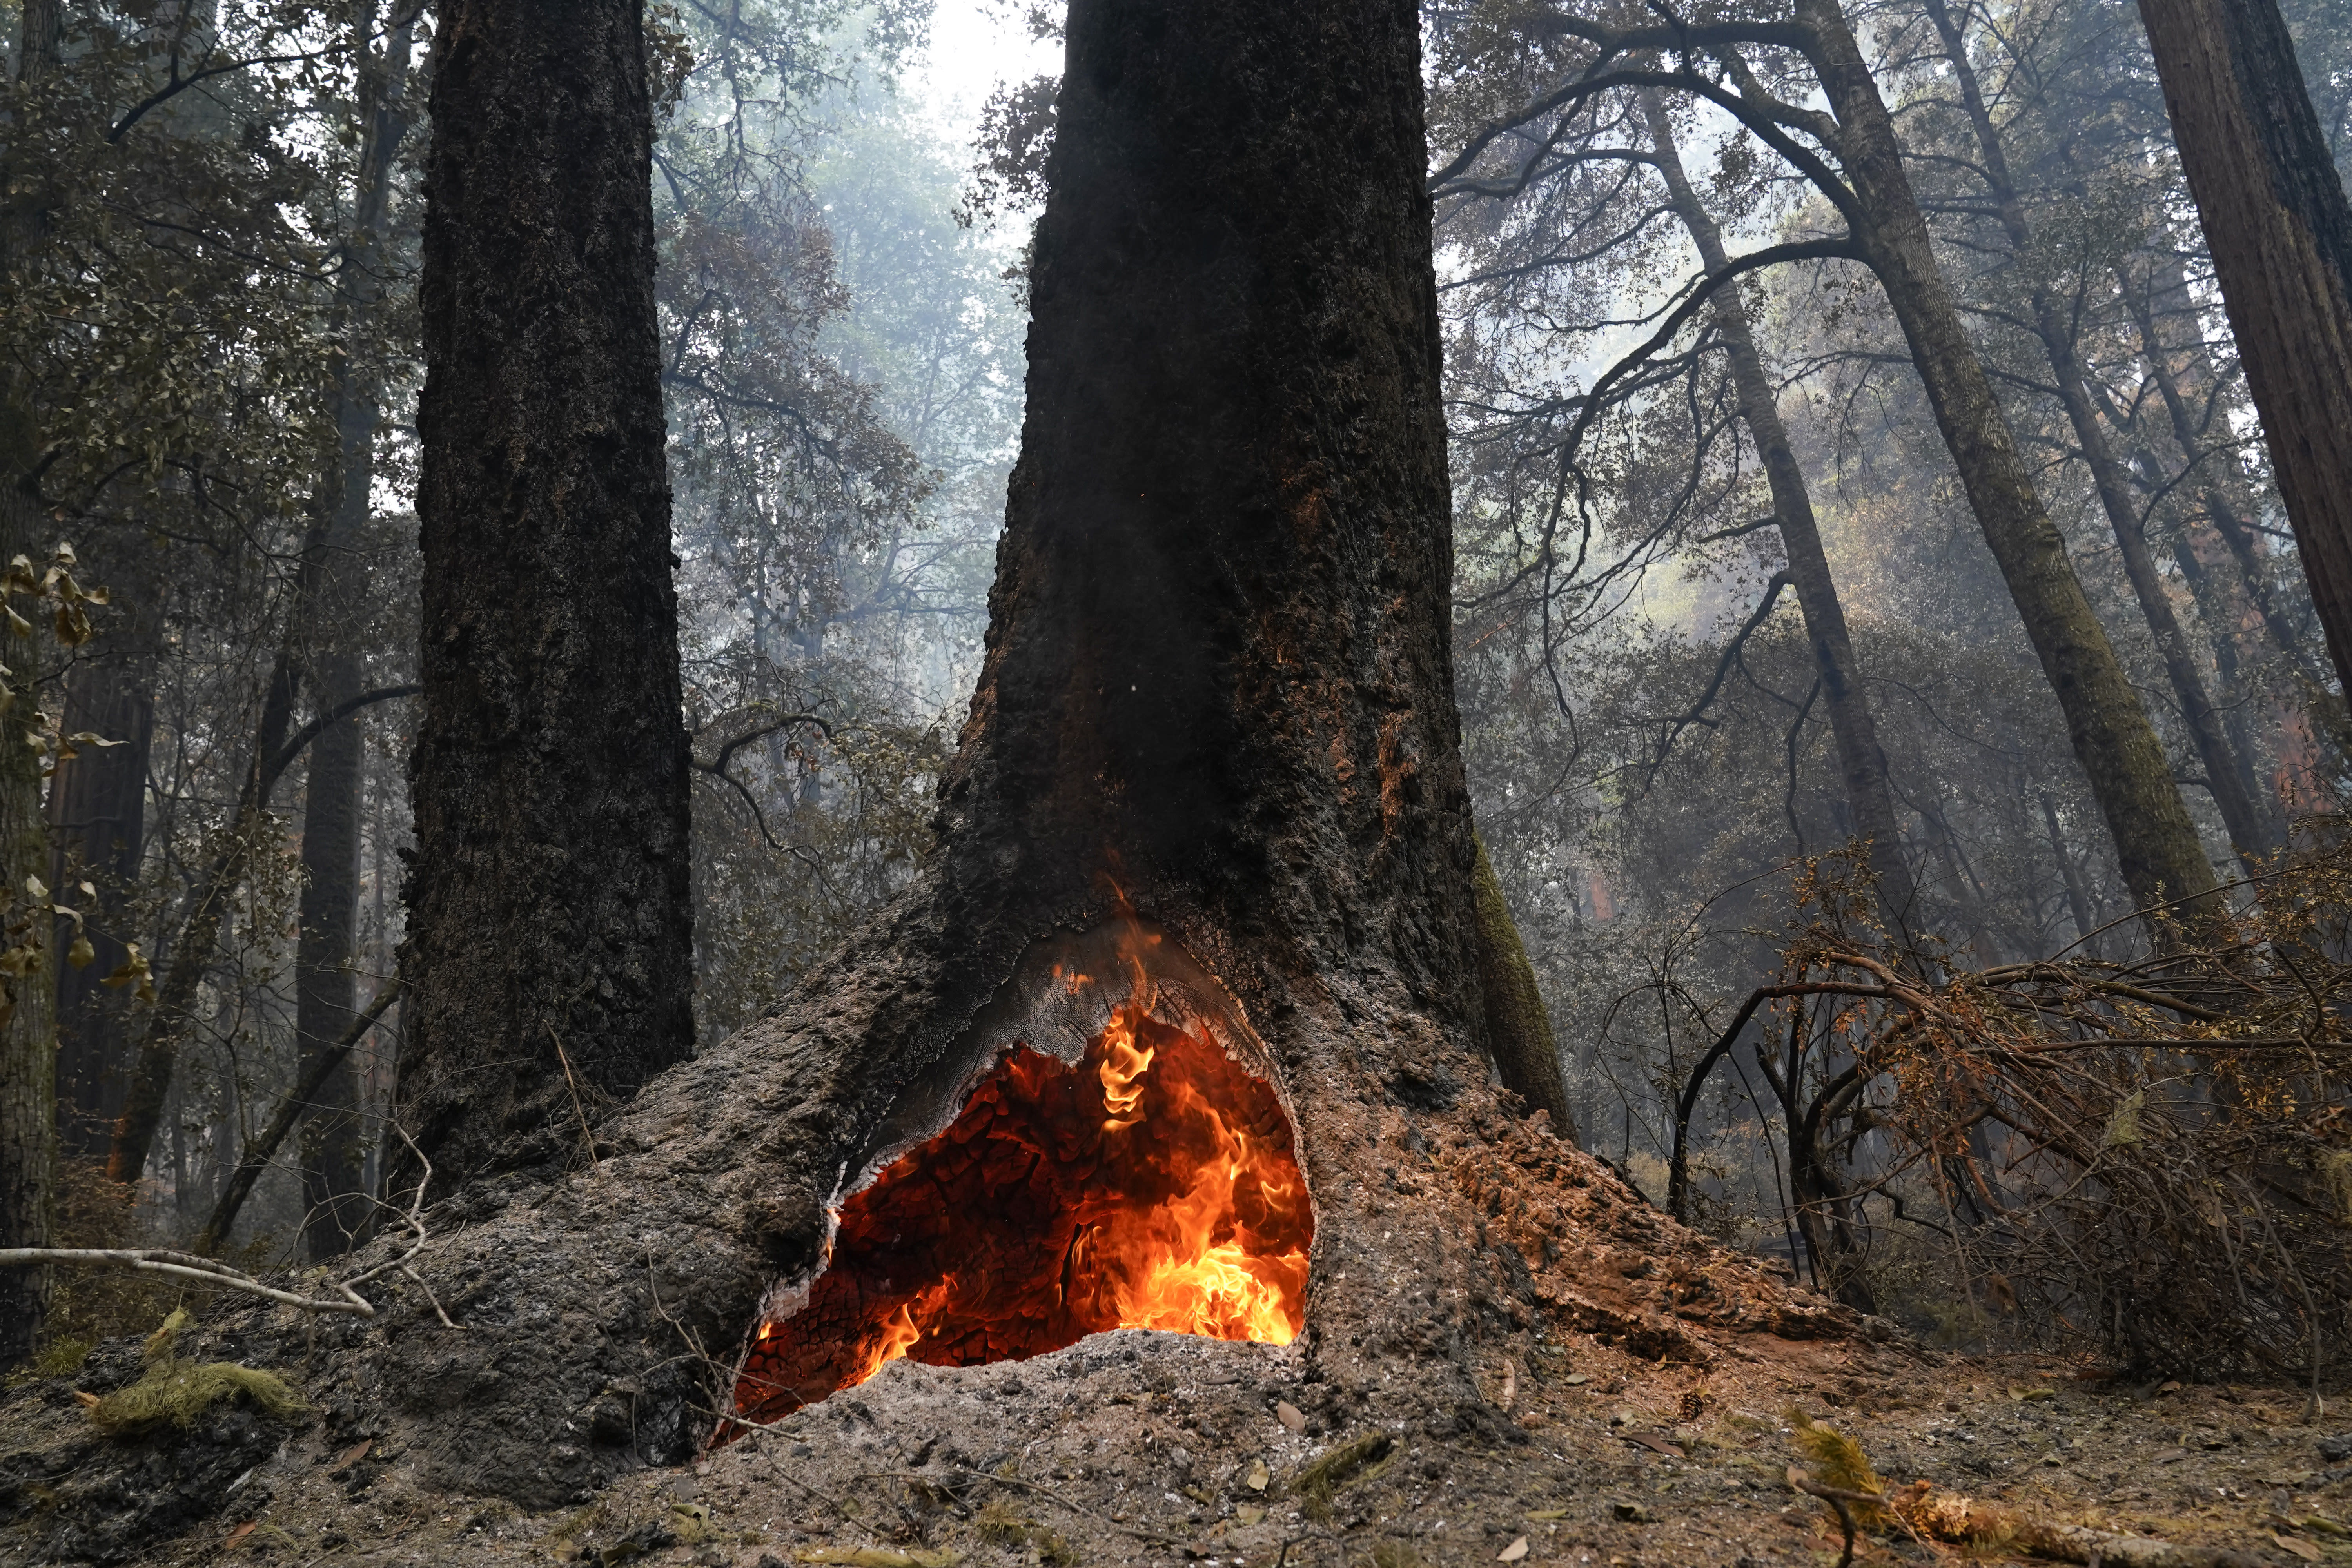 Fire burns in the hollow of an old-growth redwood tree in Big Basin Redwoods State Park, Calif., Monday, Aug. 24, 2020. The CZU Lightning Complex wildfire tore through the park but most of the redwoods, some as old as 2,000 years, were still standing. (AP Photo/Marcio Jose Sanchez)